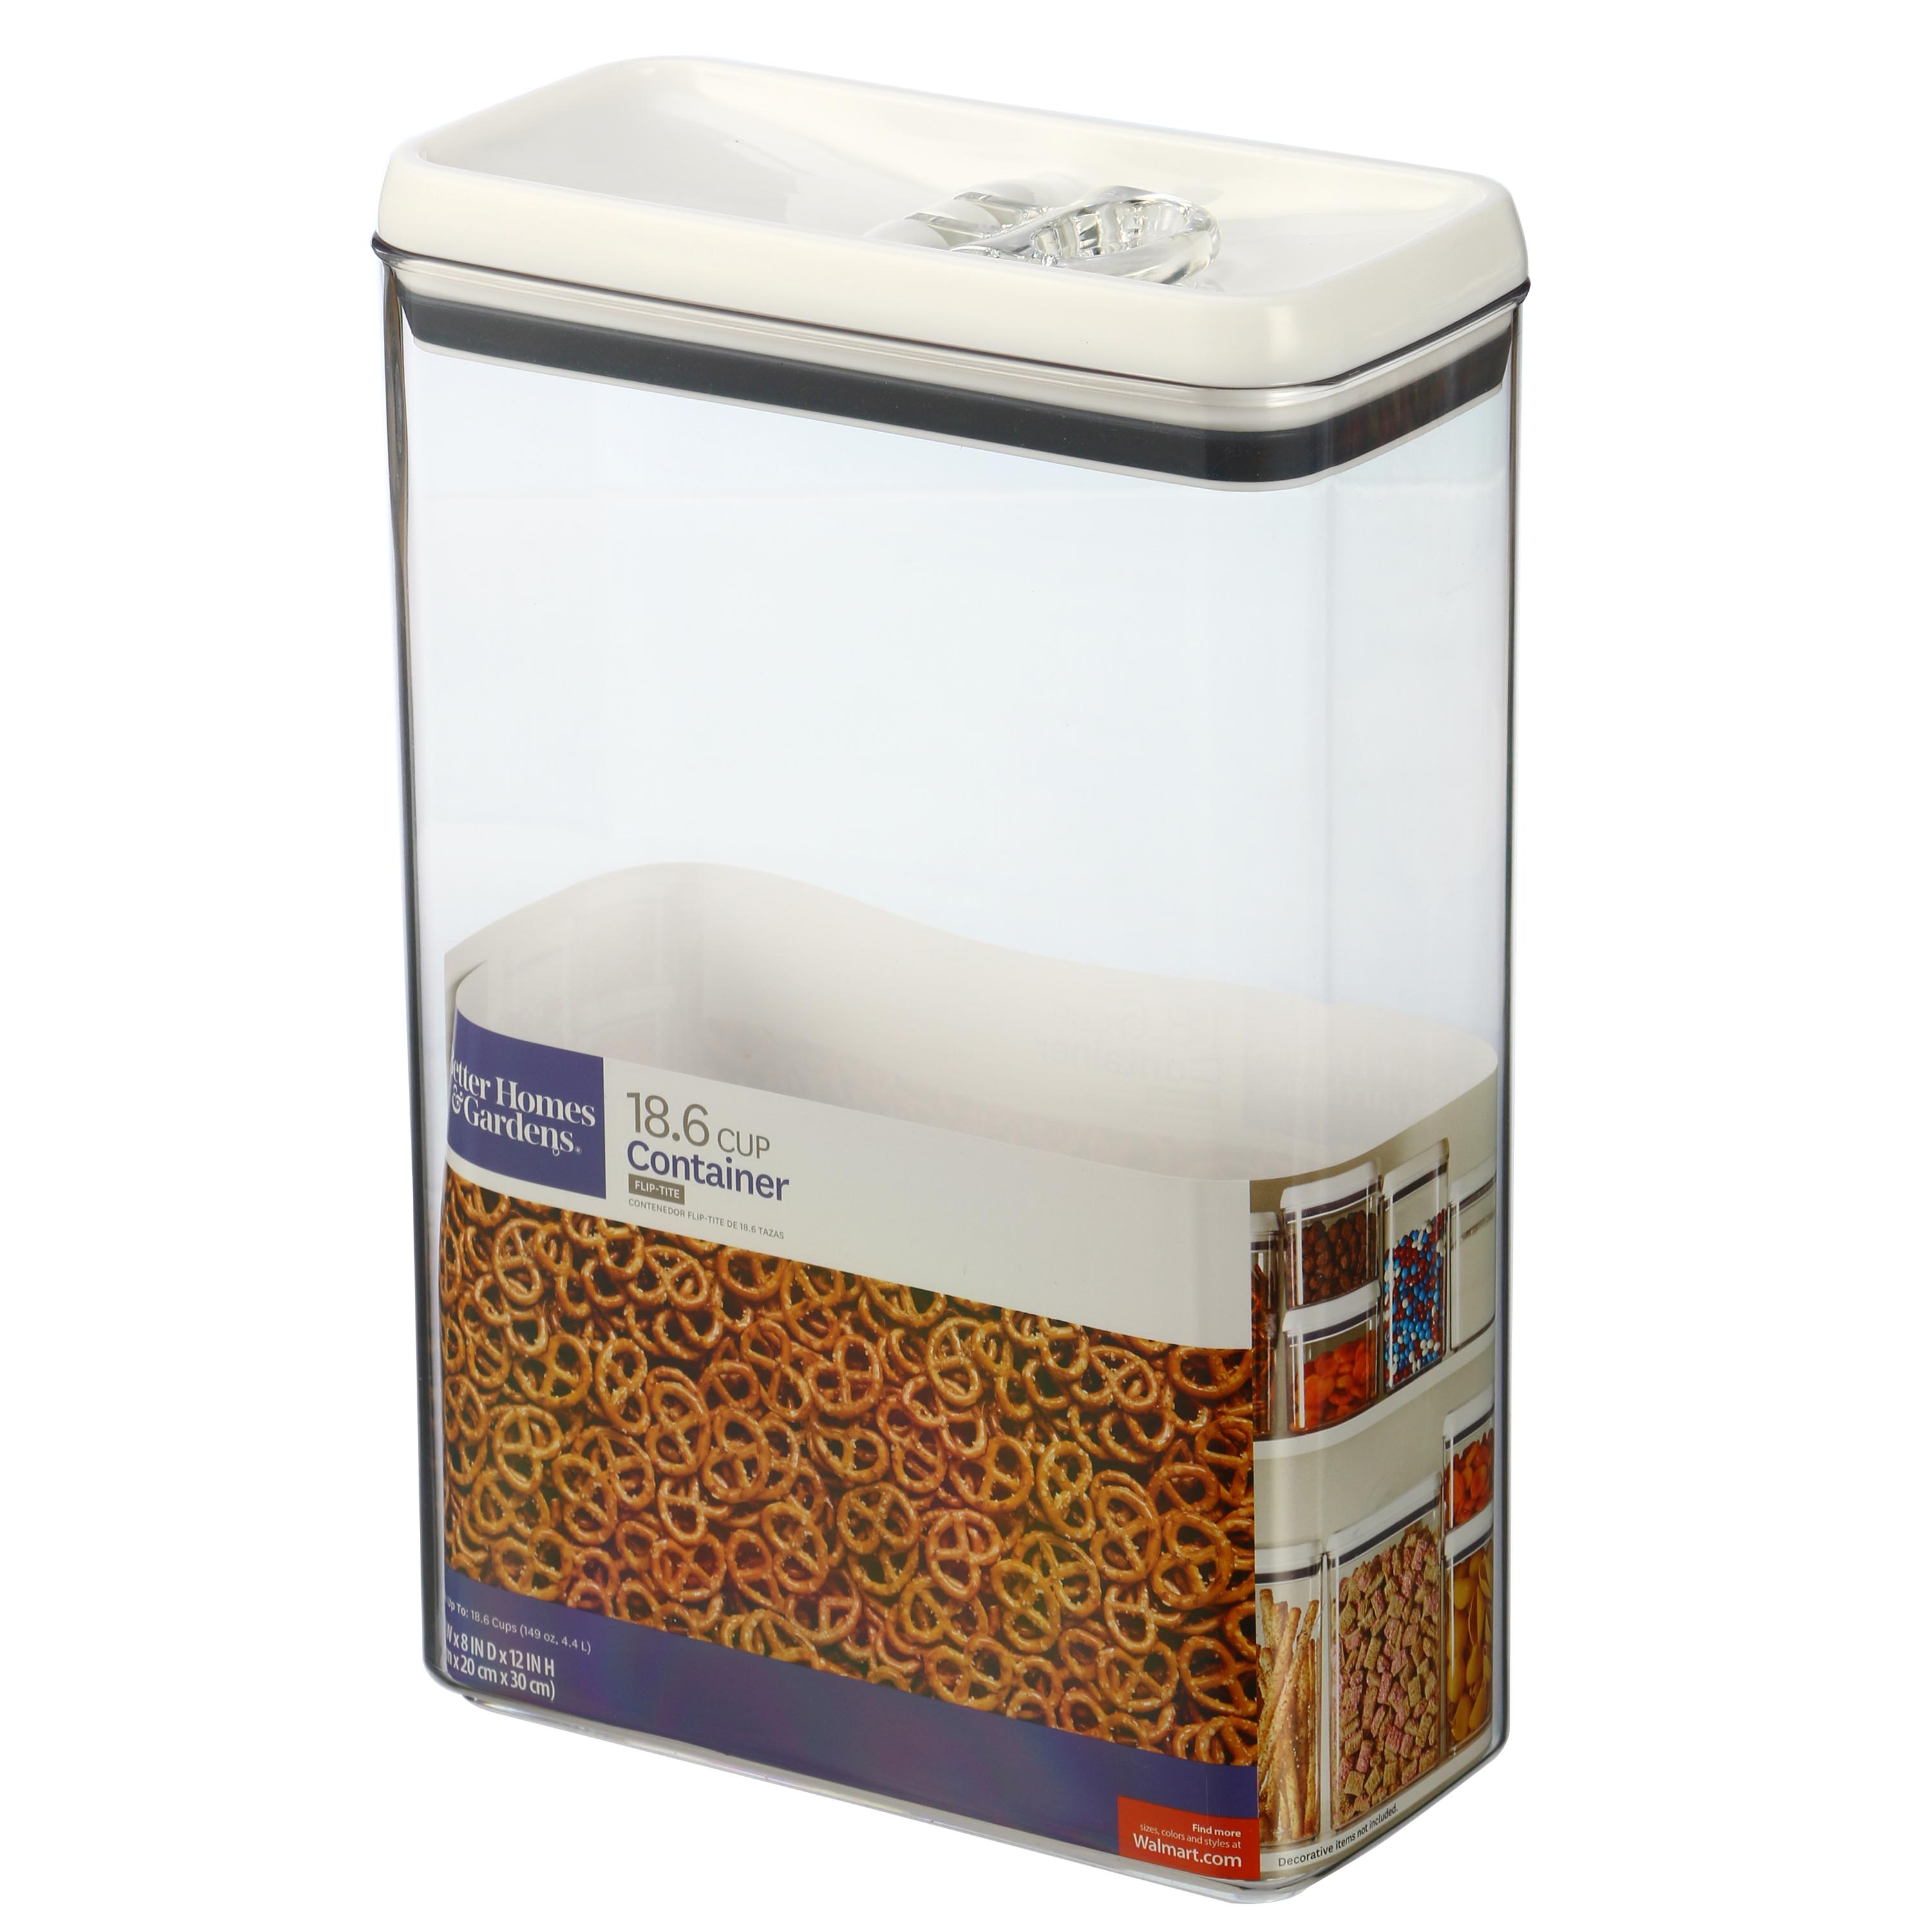 Better Homes and Gardens 18.6-cup Rectangle Container